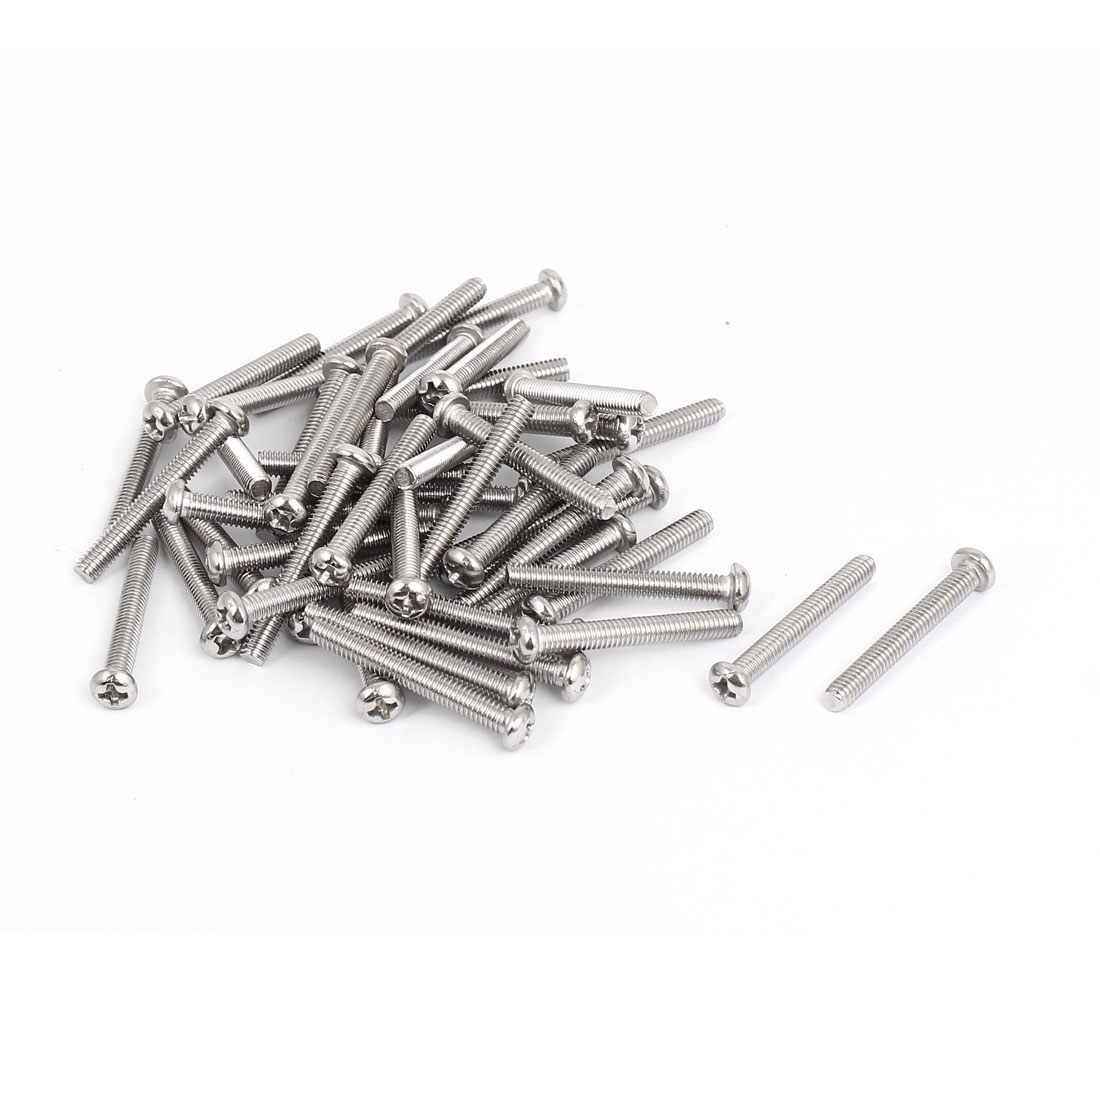 M4x30mm Stainless Steel Phillips Round Pan Head Machine Screws 50pcs